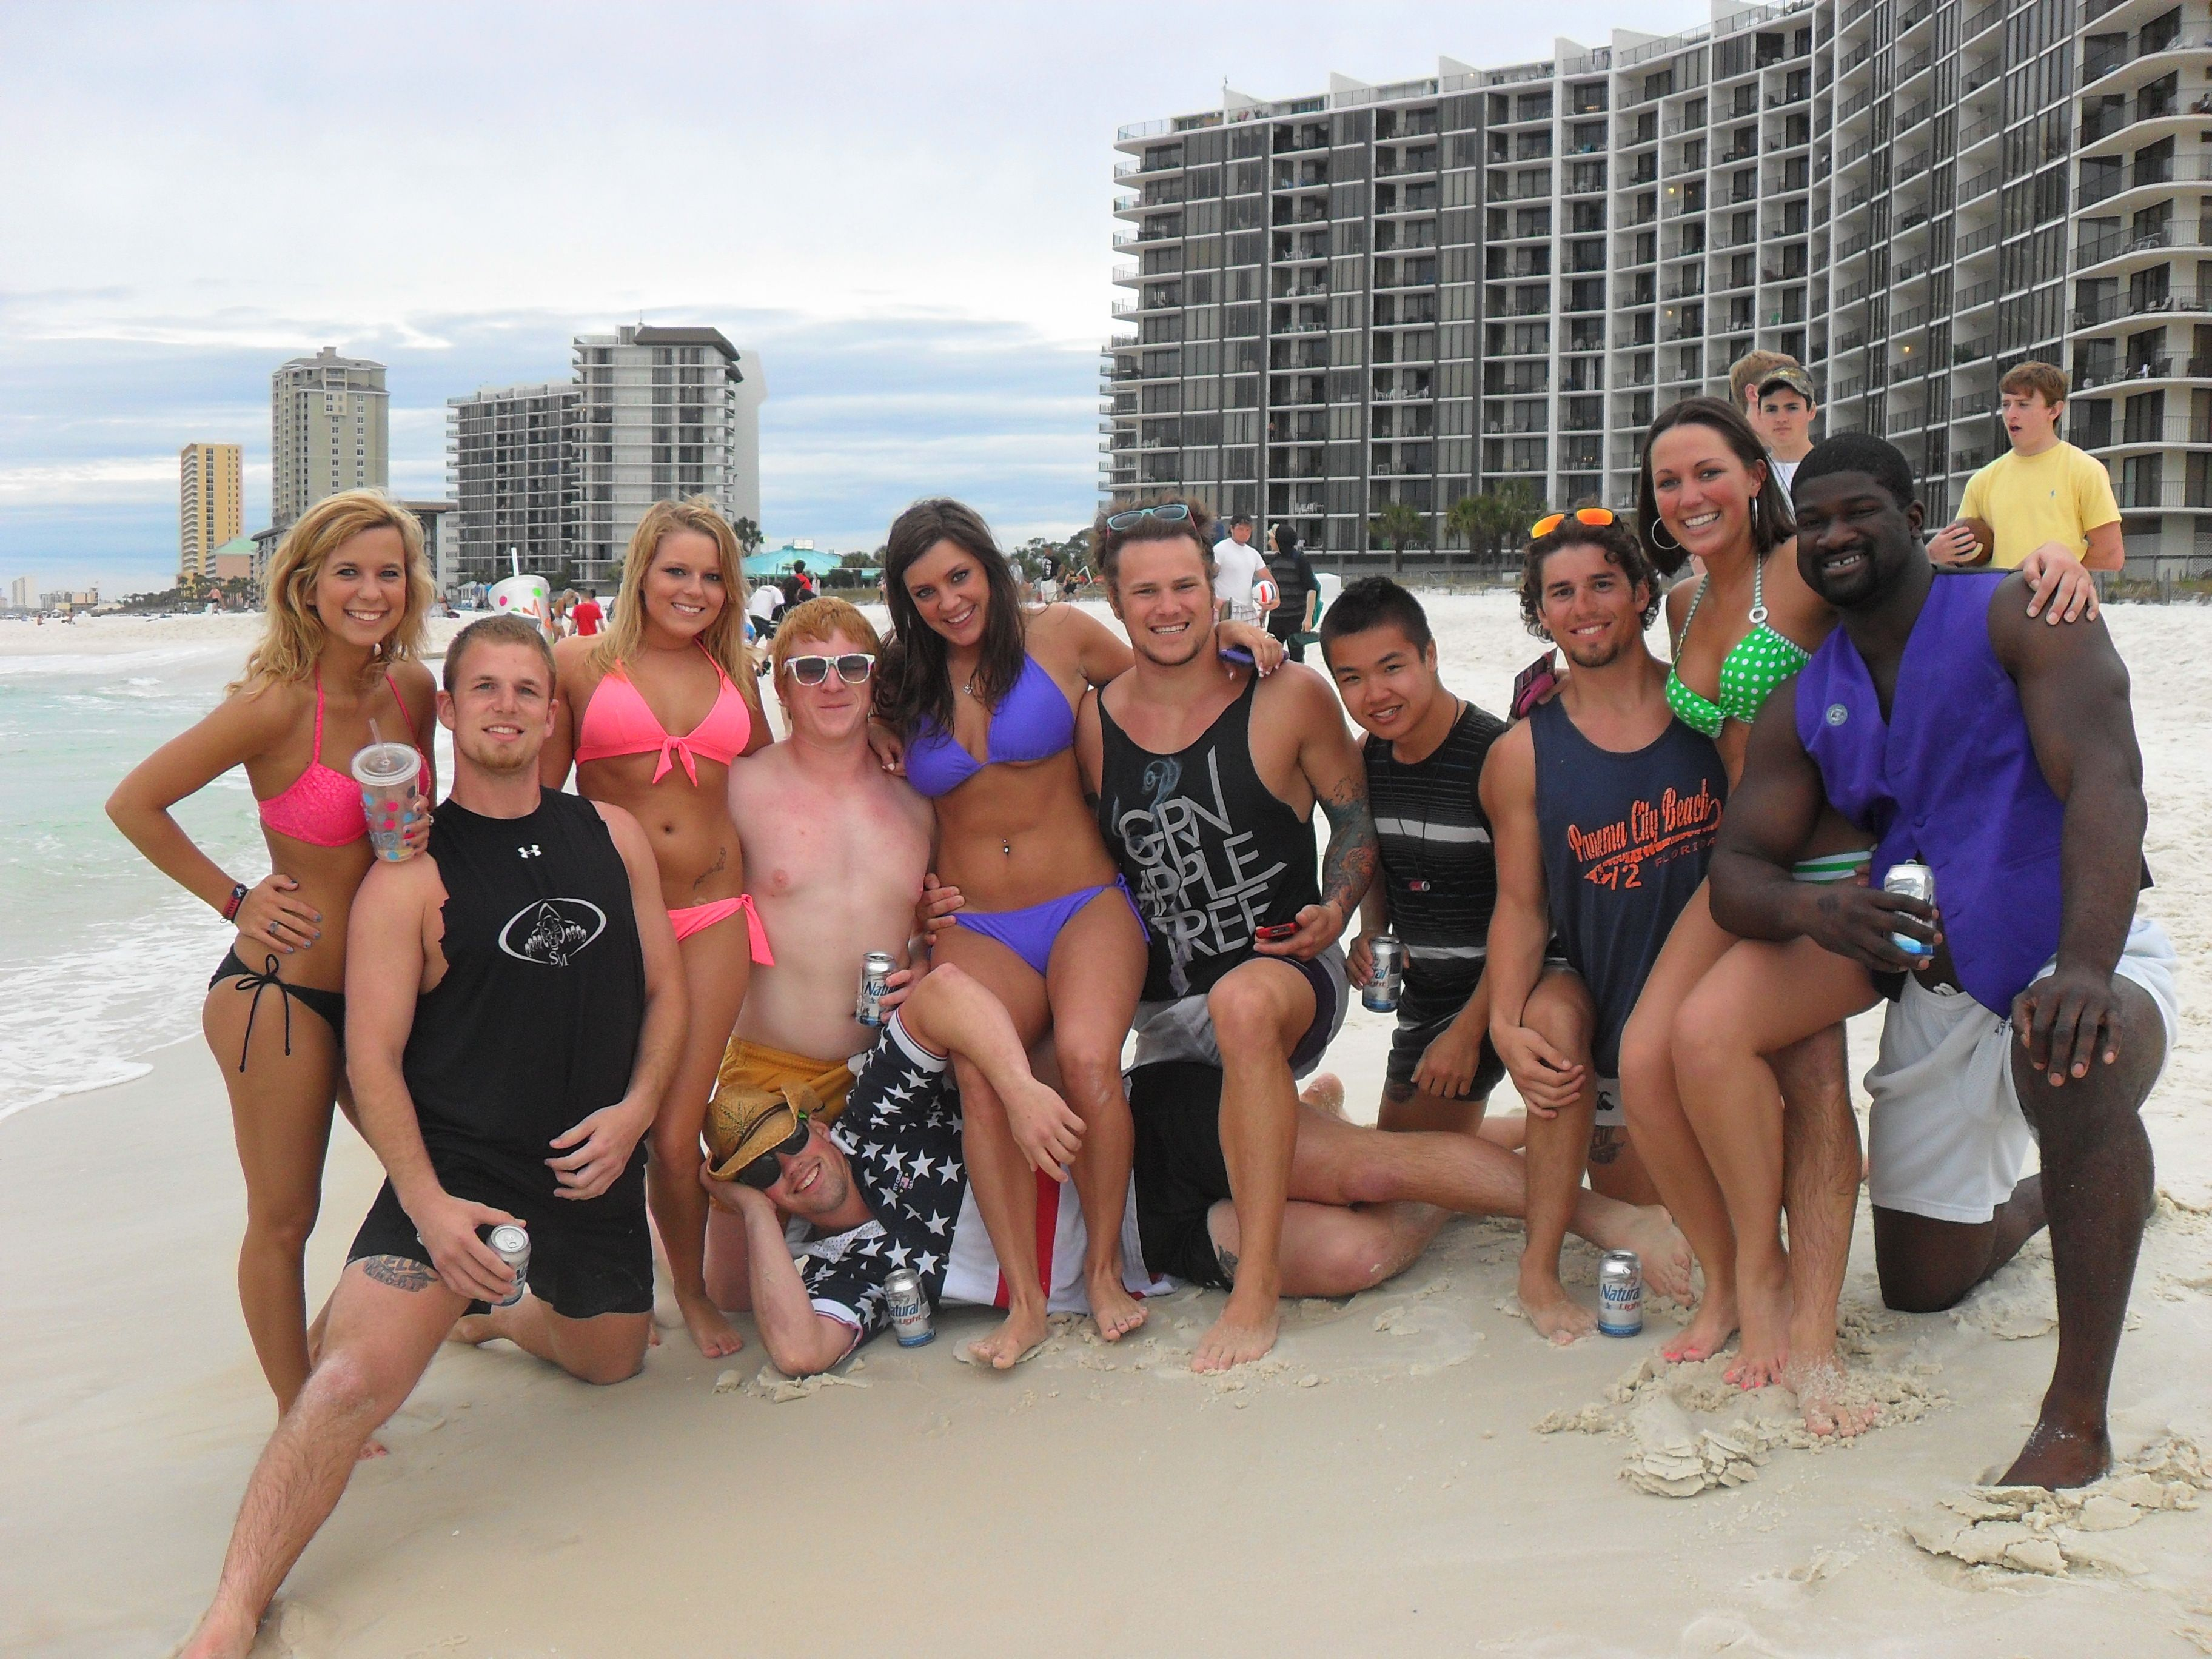 college springs asian singles Free online dating in college springs for all ages and ethnicities, including seniors, white, black women and black men, asian, latino, latina, and everyone else forget classified personals, speed dating, or other college springs dating sites or chat rooms, you've found the best.